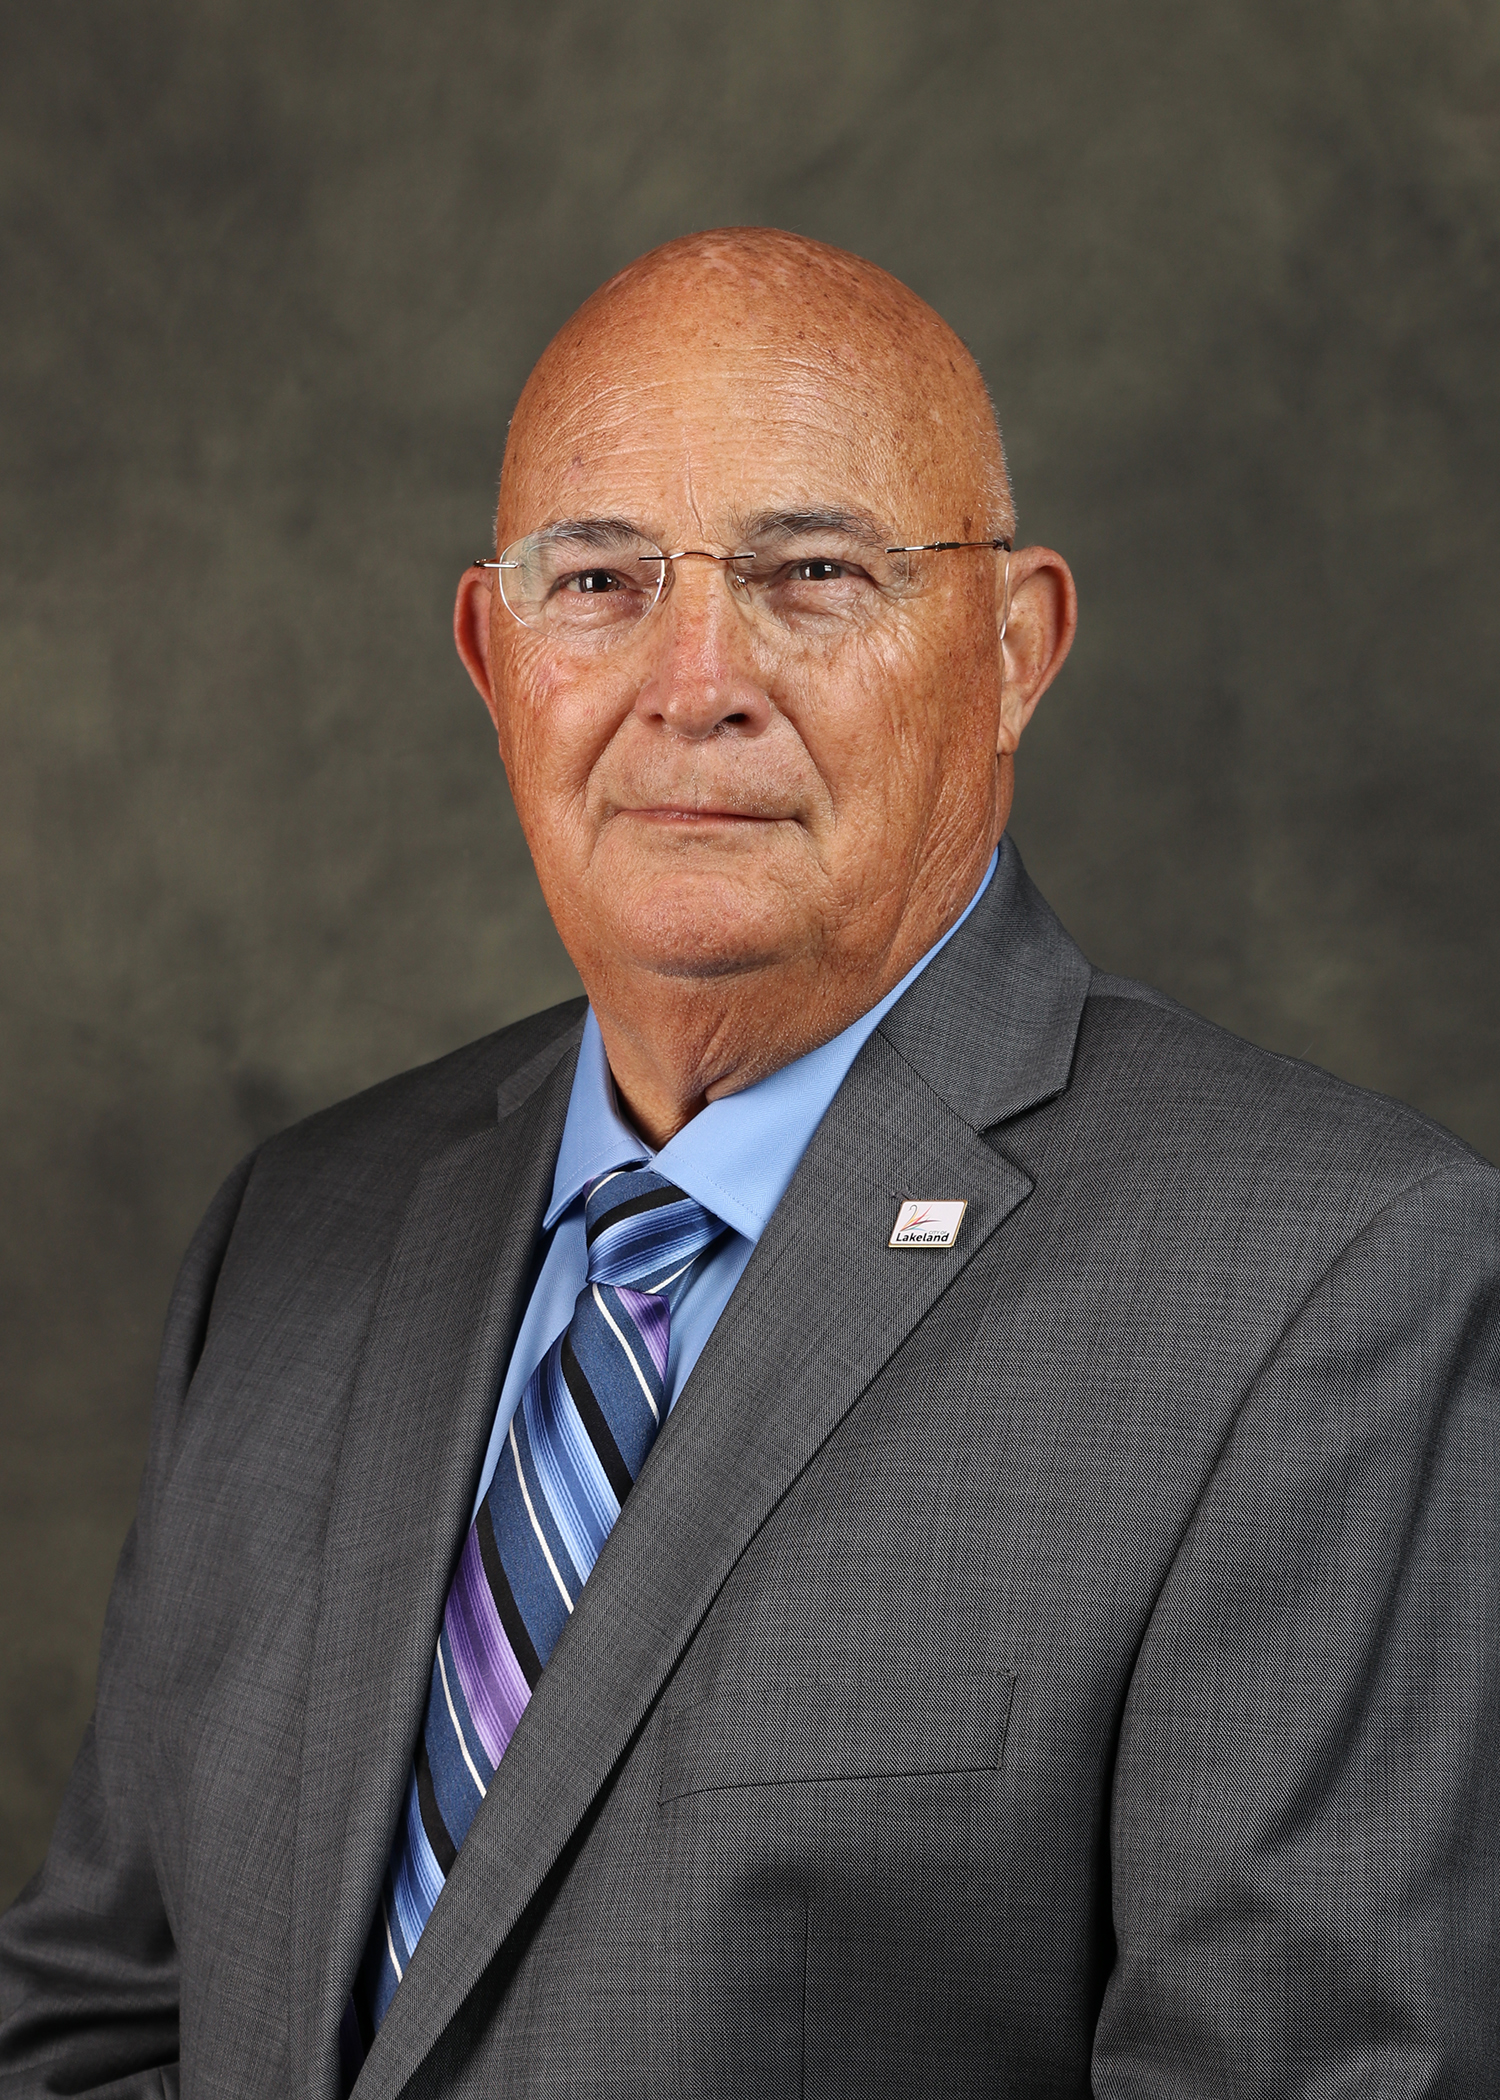 City Commissioner Bill Read